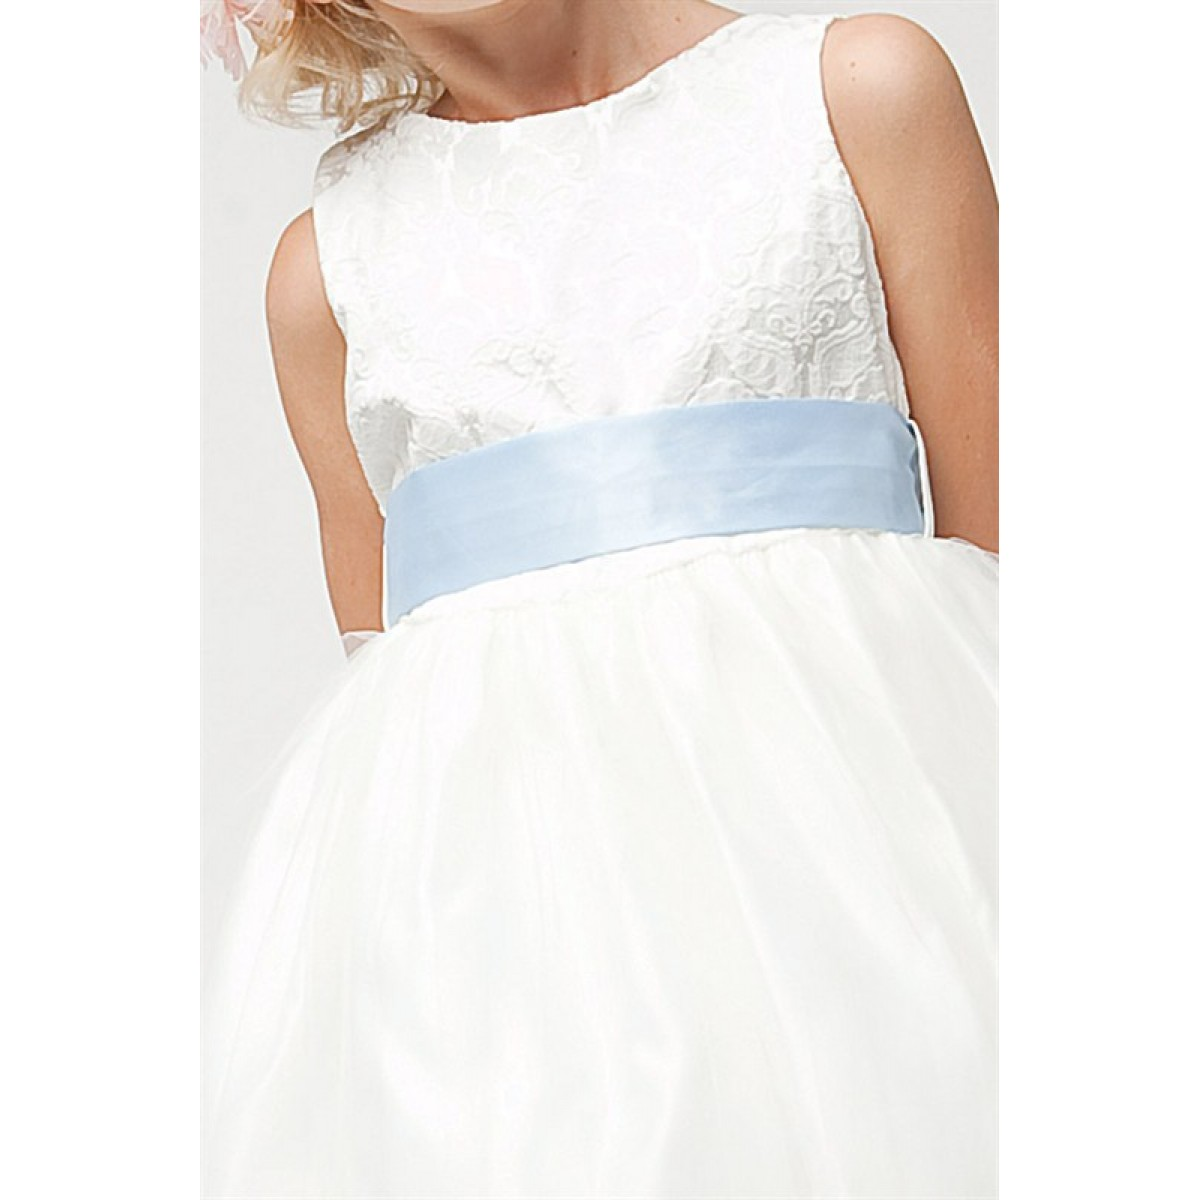 4c4a4c533 Home » Ivory Jacquard Bodice w/ Tulle Skirt & Removable Sash. Help. Contact  · Information. 816-866-5167. small image; small image ...